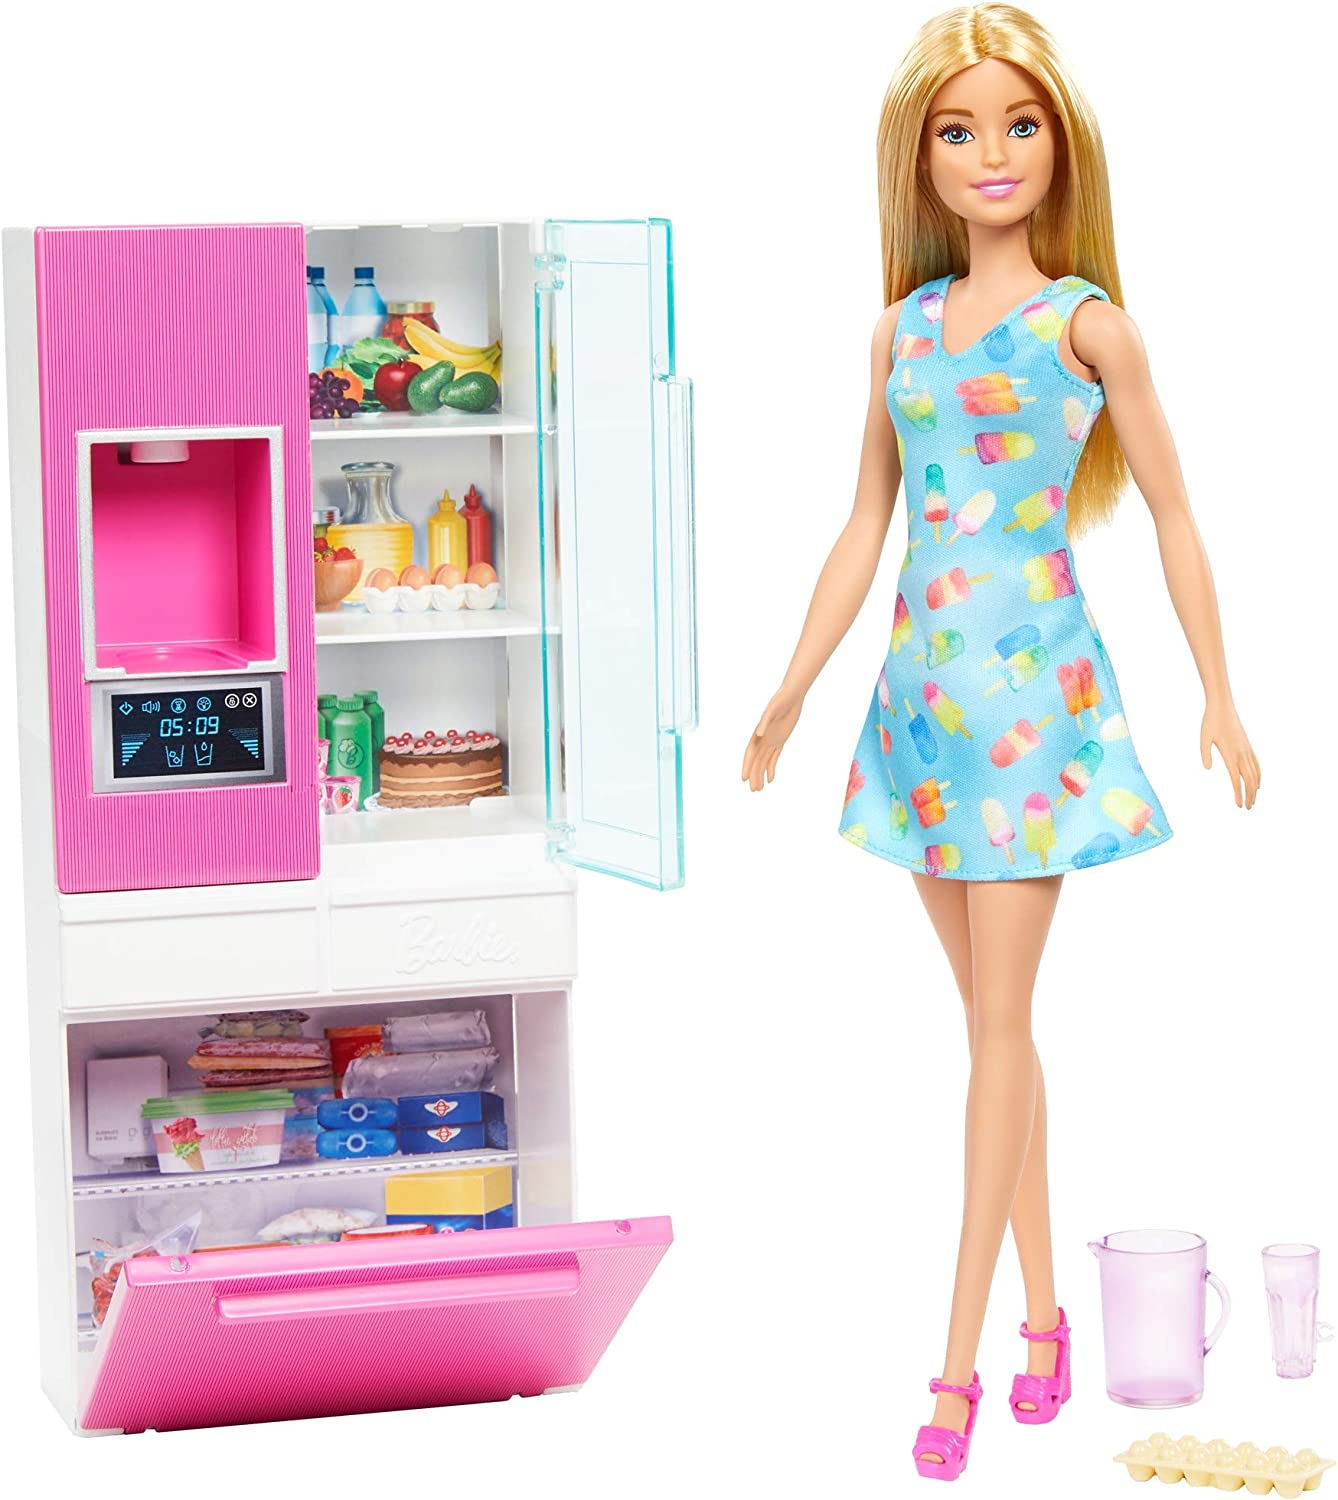 Amazon Com Barbie Doll 11 5 In Blonde And Furniture Set Refrigerator With Working Water Dispenser And Three Kitchen Accessories Gift For 3 To 7 Year Olds Toys Games